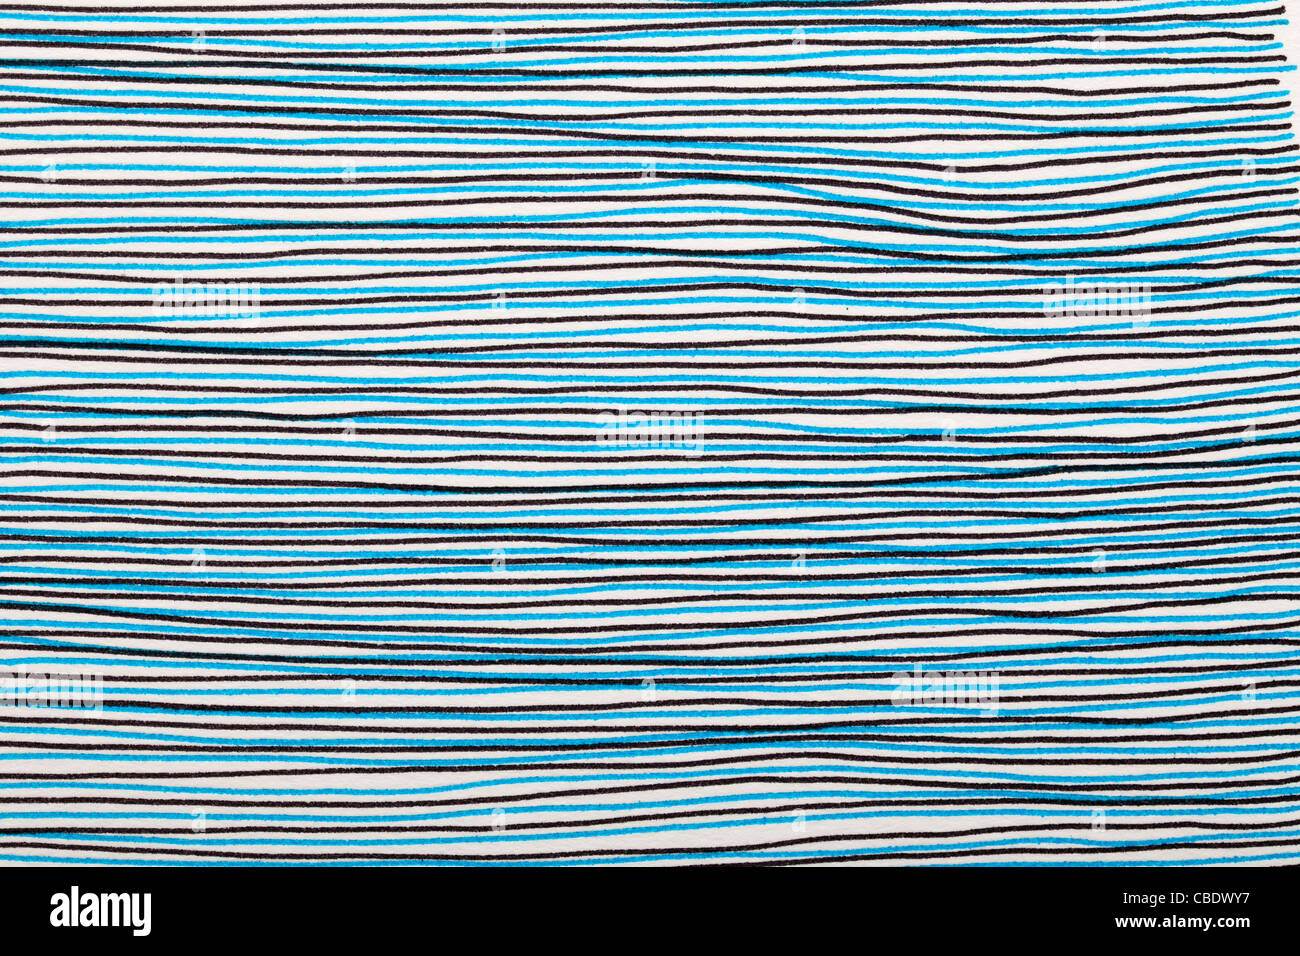 Scribble Abstract Black And Blue Lines Pen Drawing And